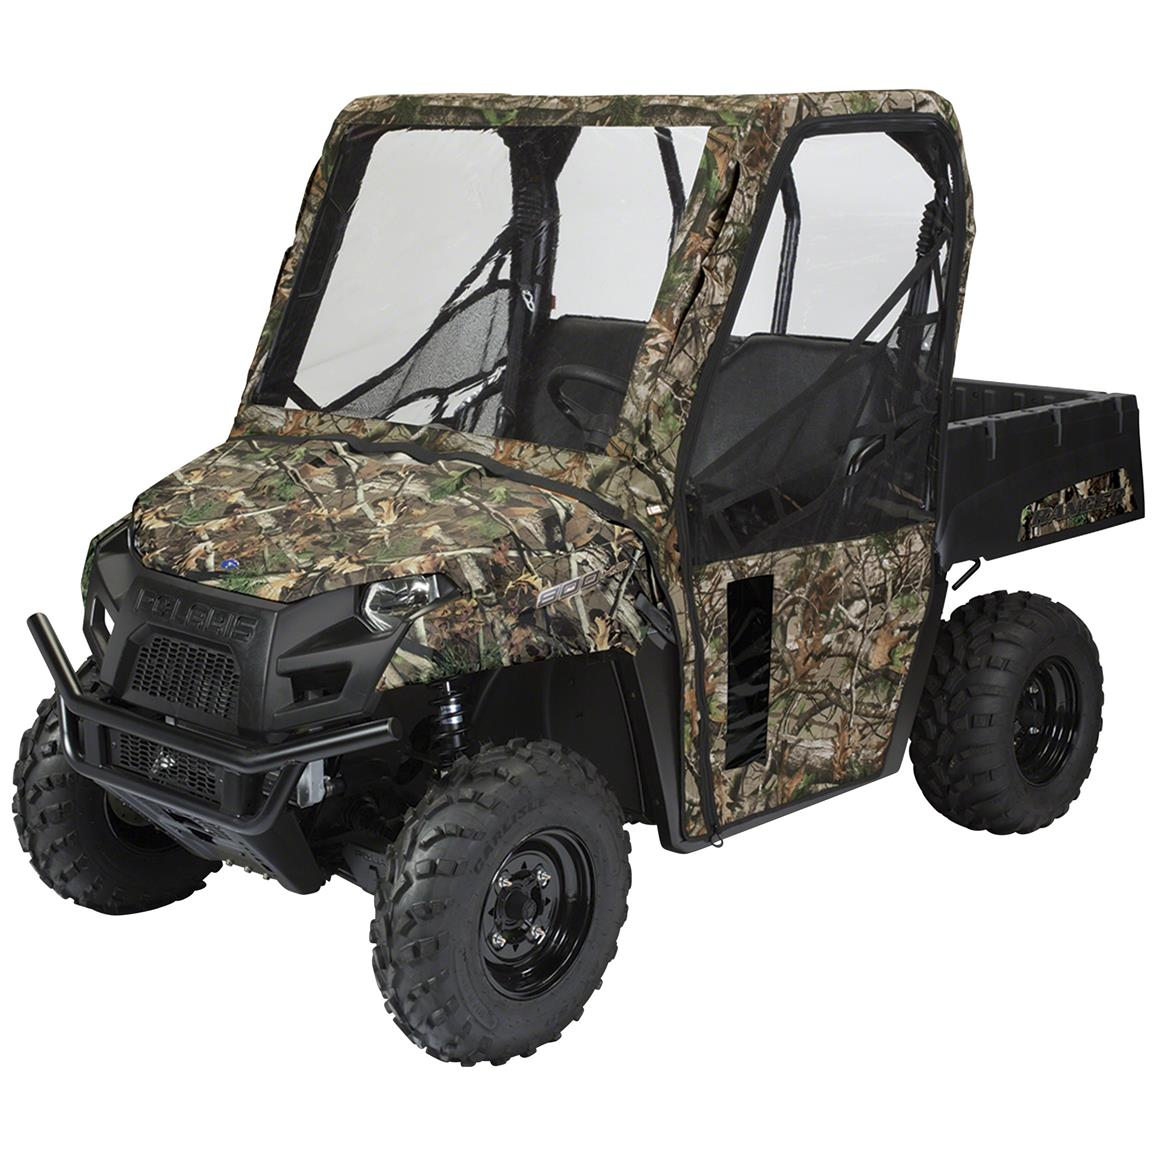 Quad Gear UTV Cab Enclosure, Polaris Ranger 2002-2008 Series, Next Camo